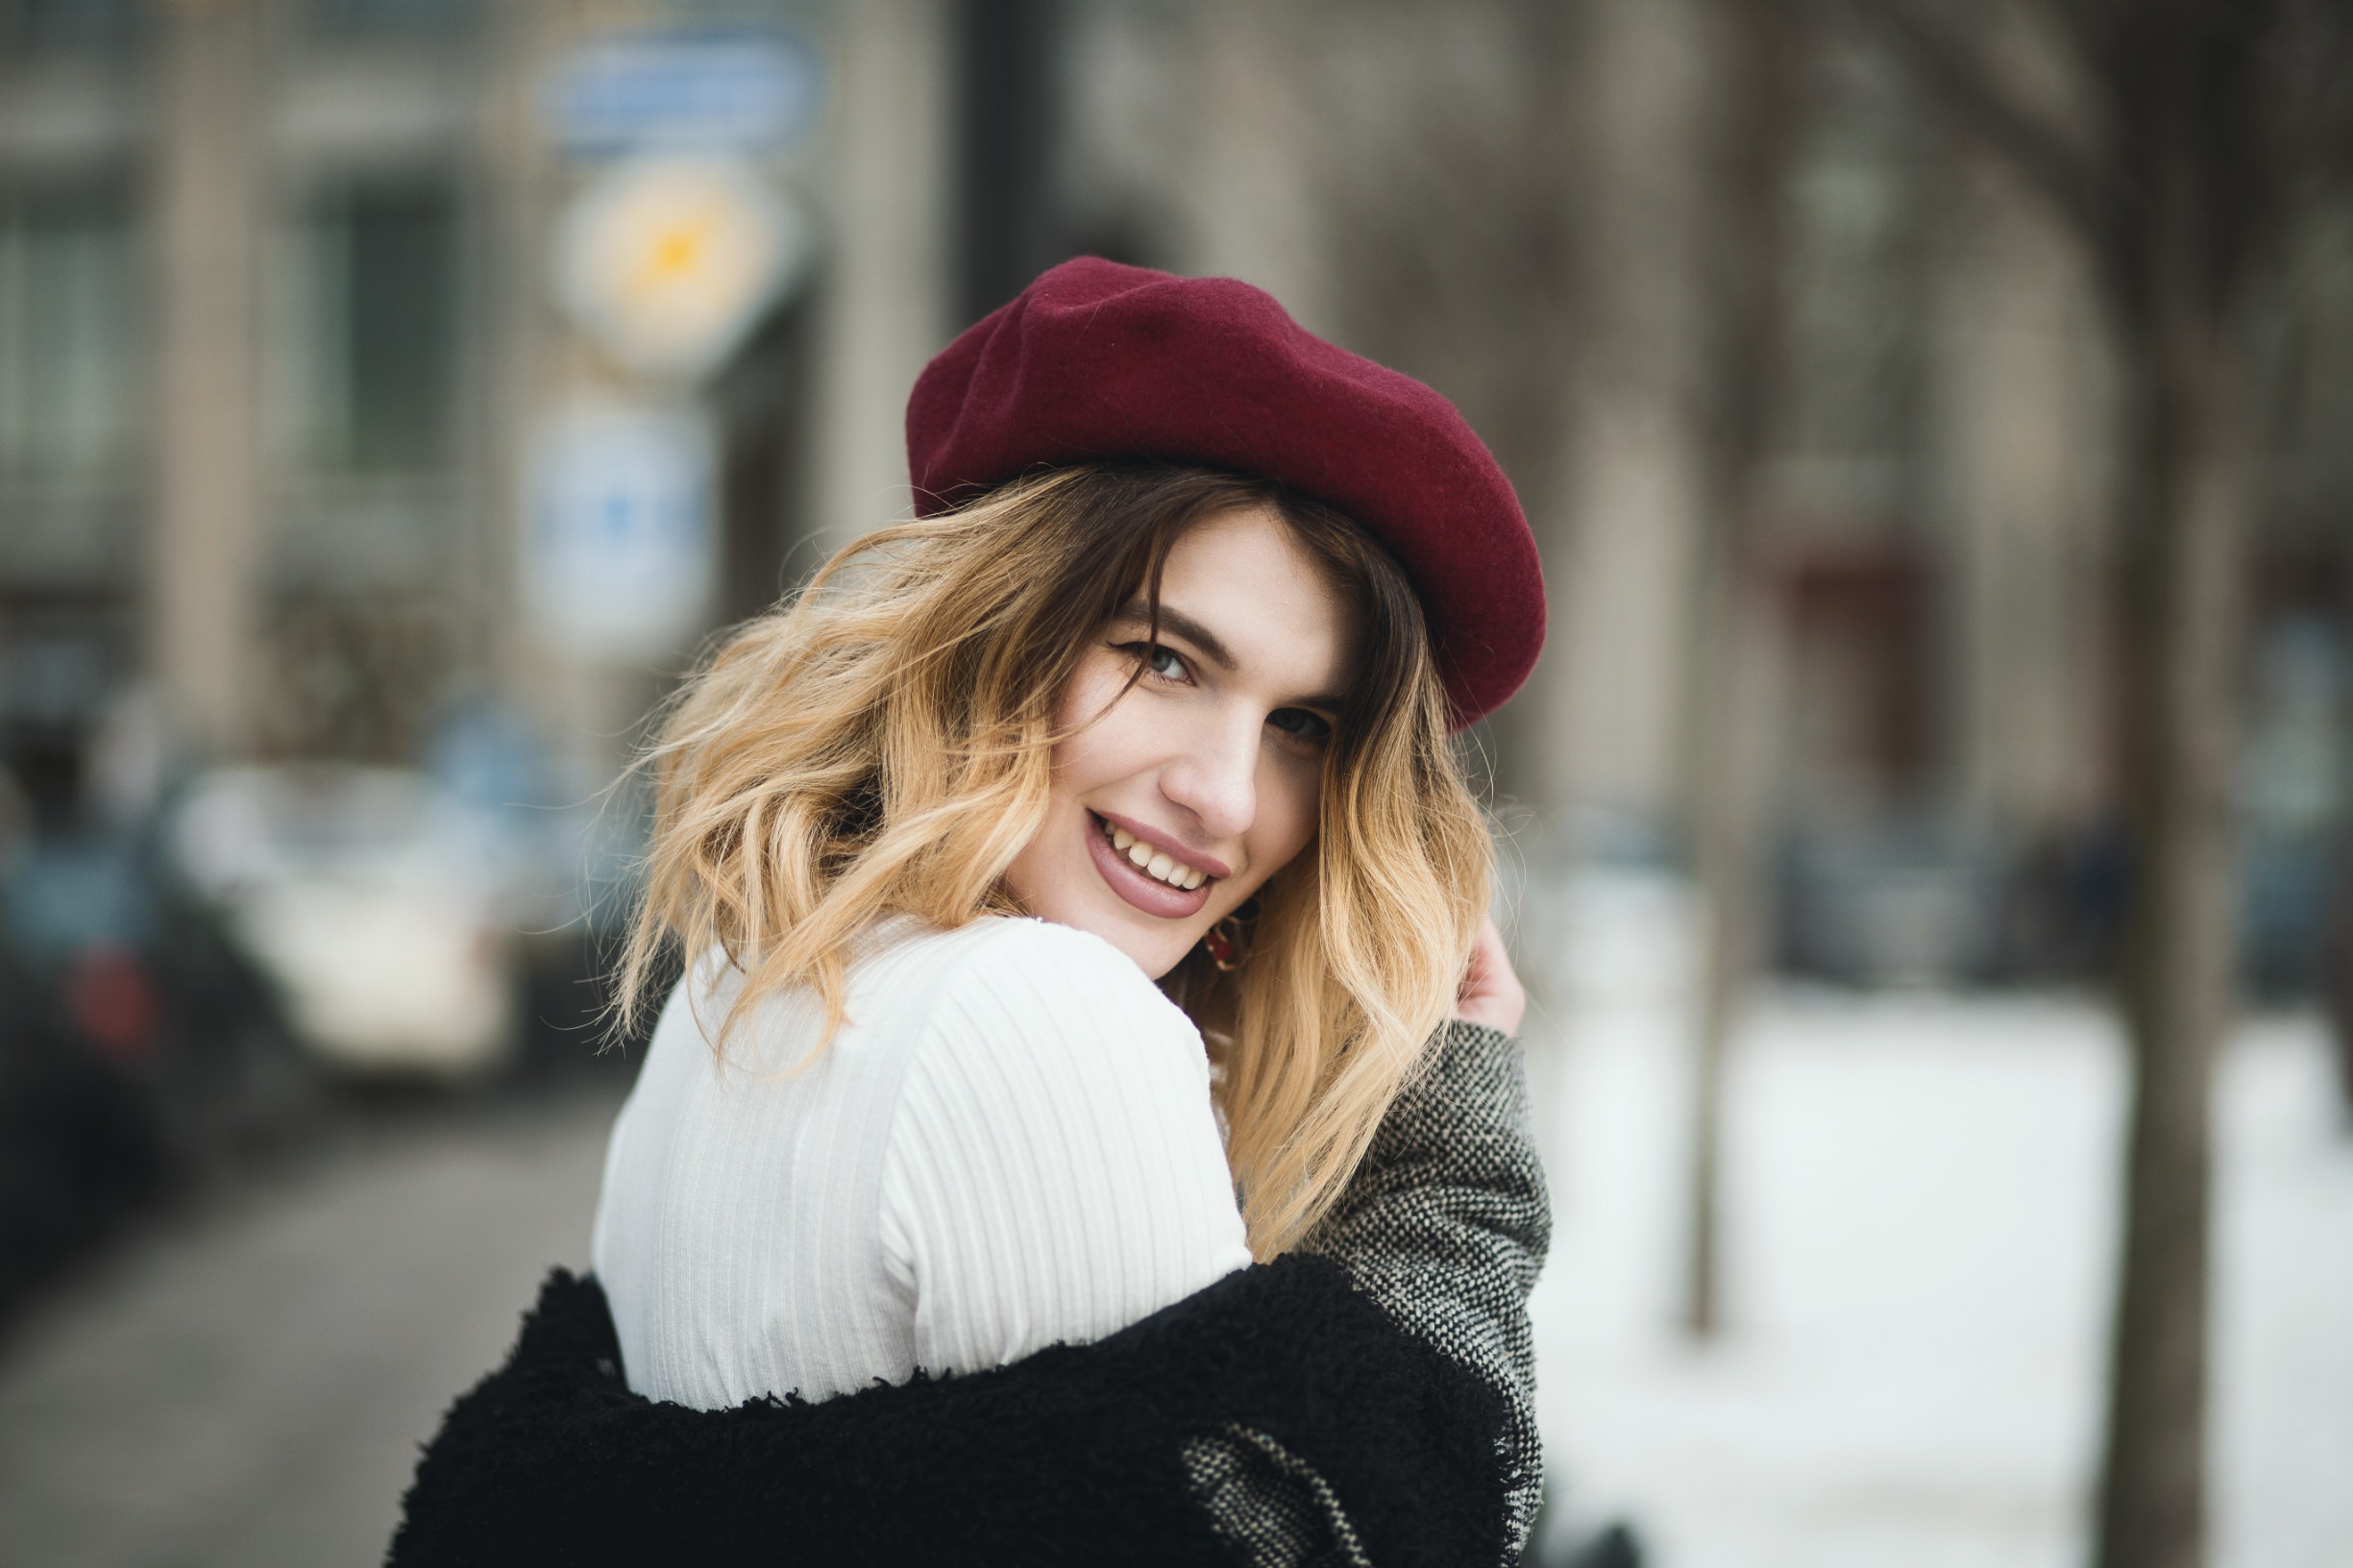 selective-focus-photography-of-smiling-woman-wearing-red-hat-1381558